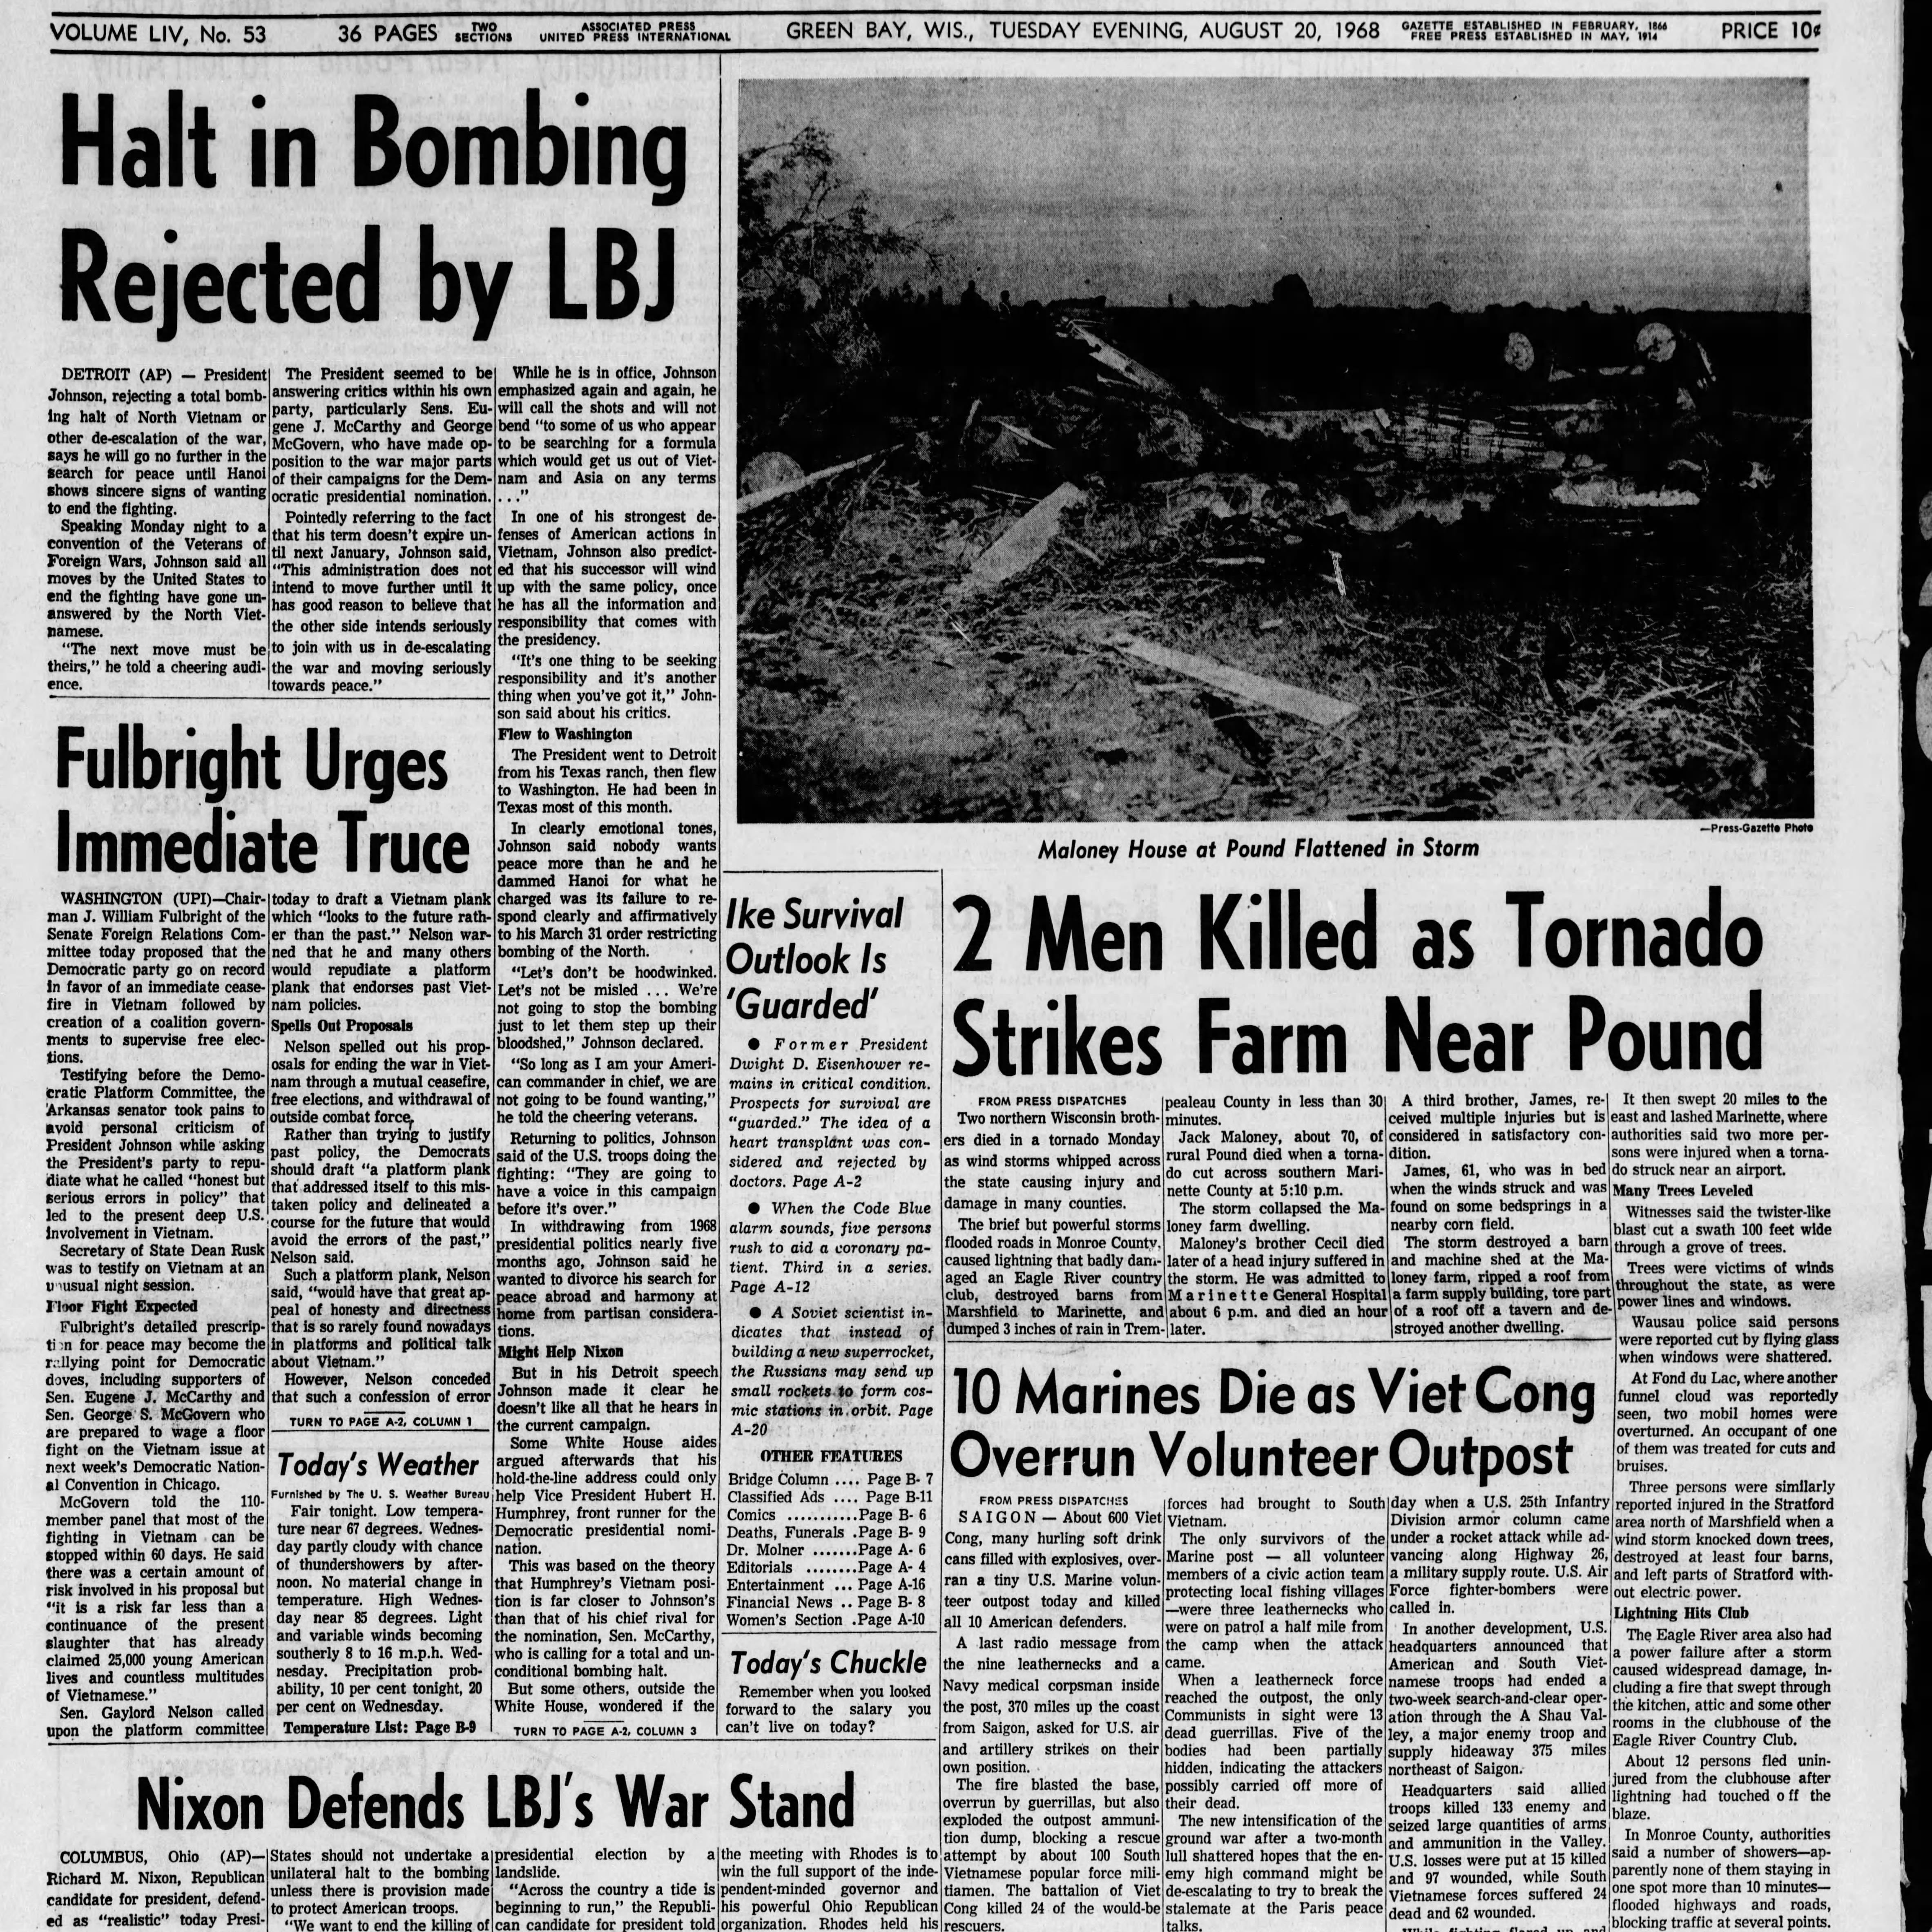 Green Bay Press-Gazette today in history: August 20